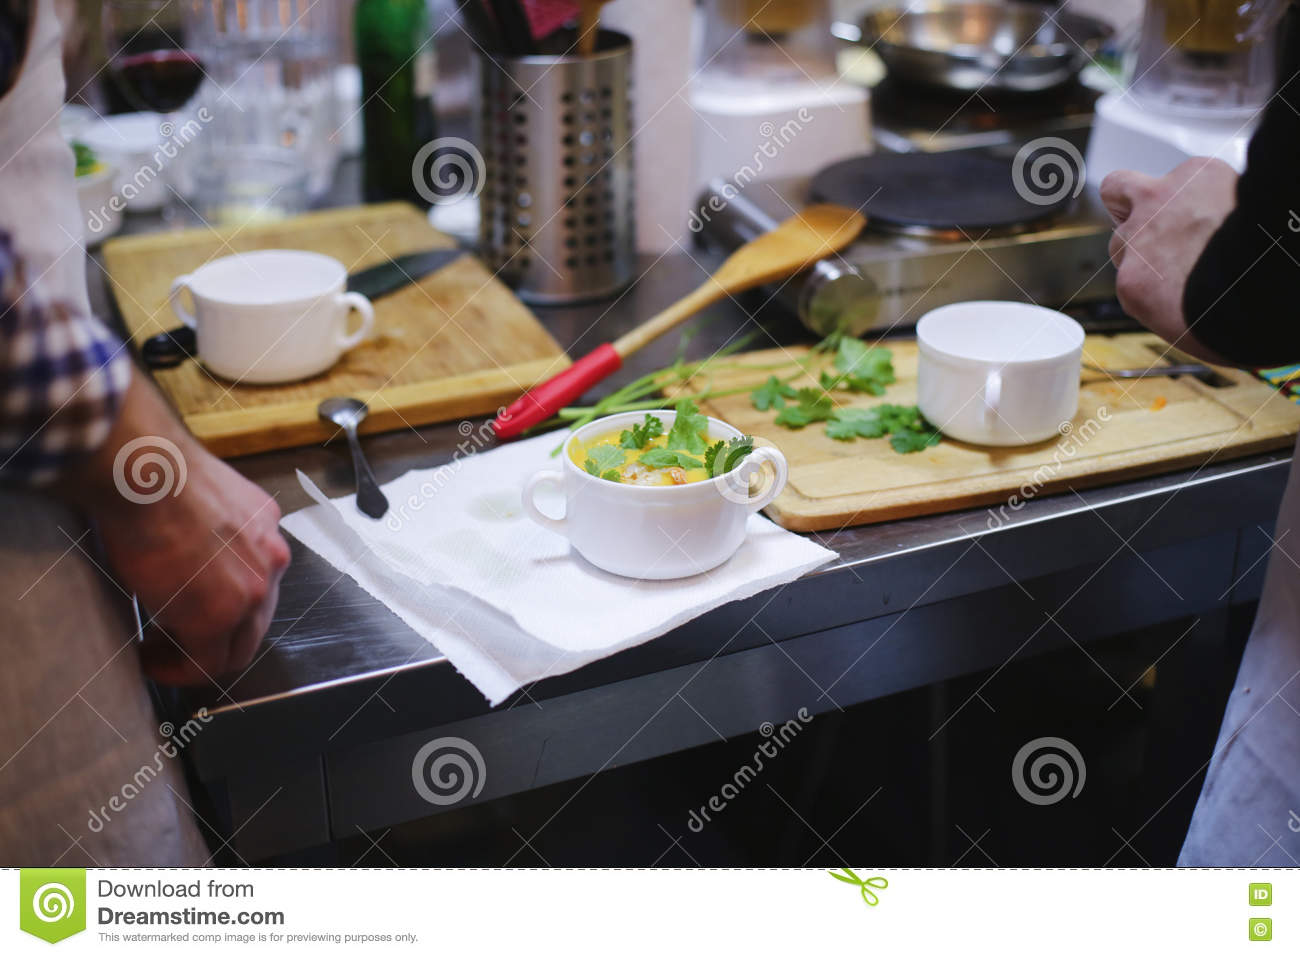 Cook in kitchen and table of food